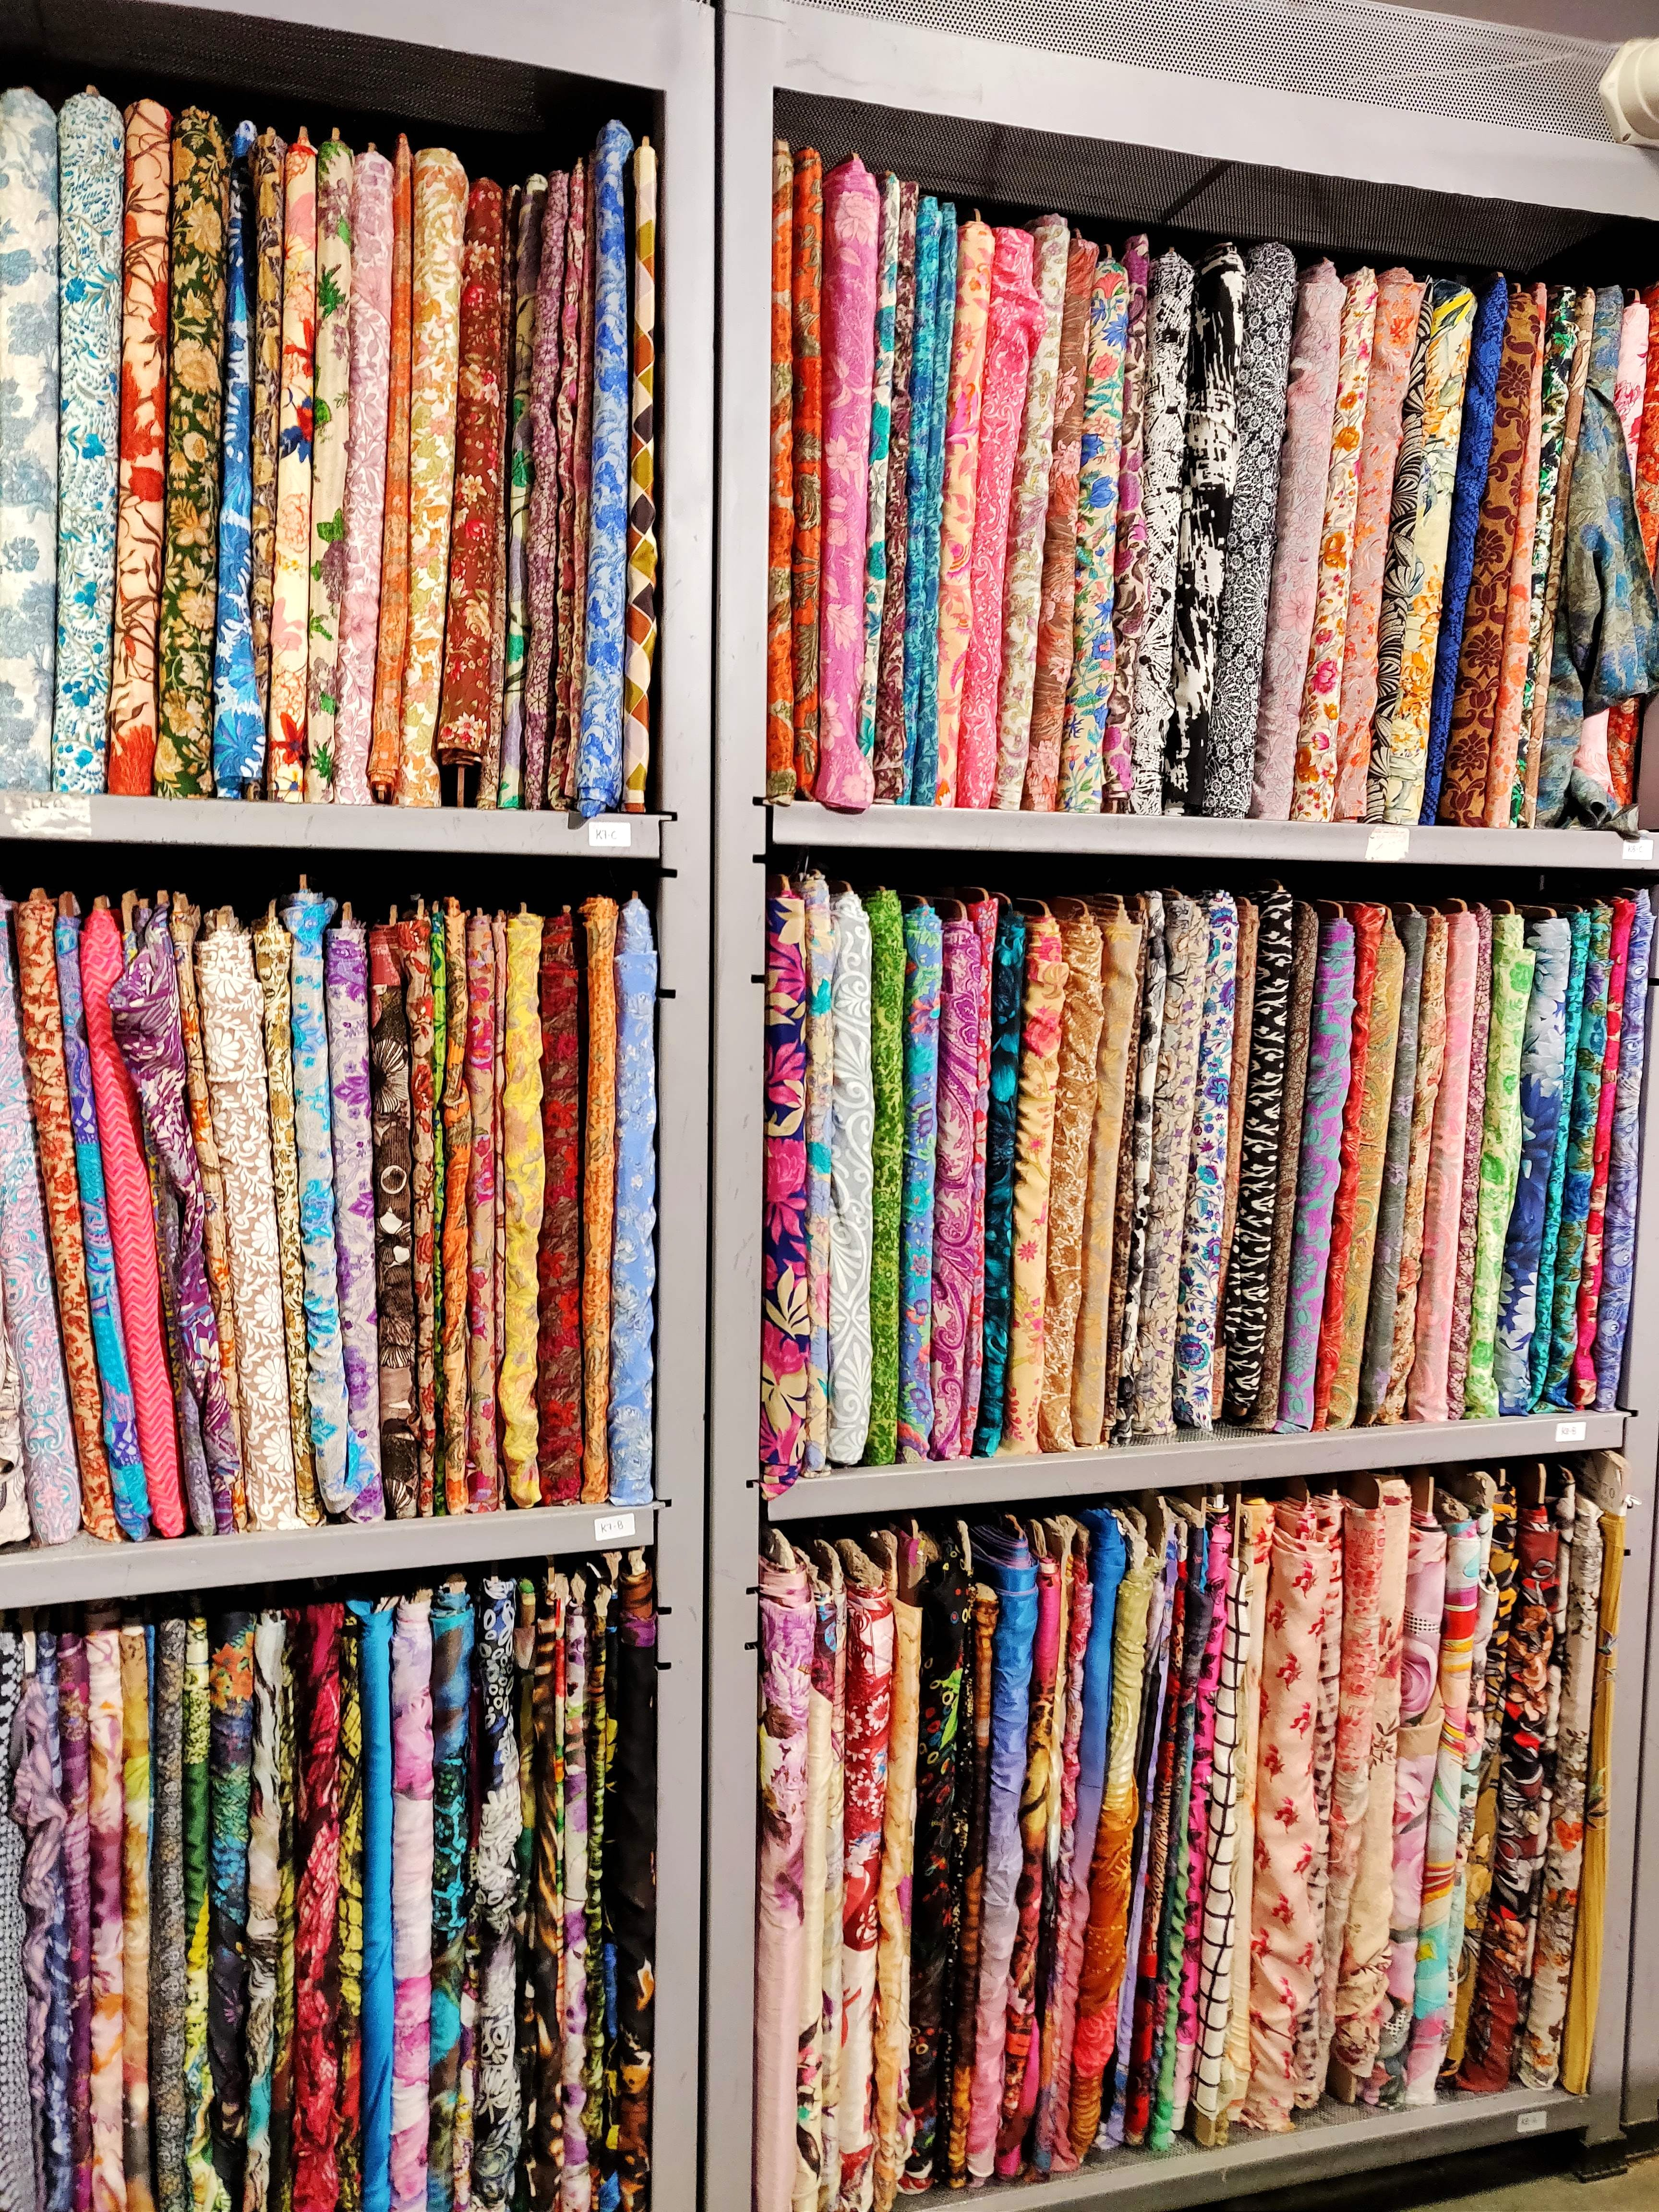 Pure Heaven For Fabric Shopping